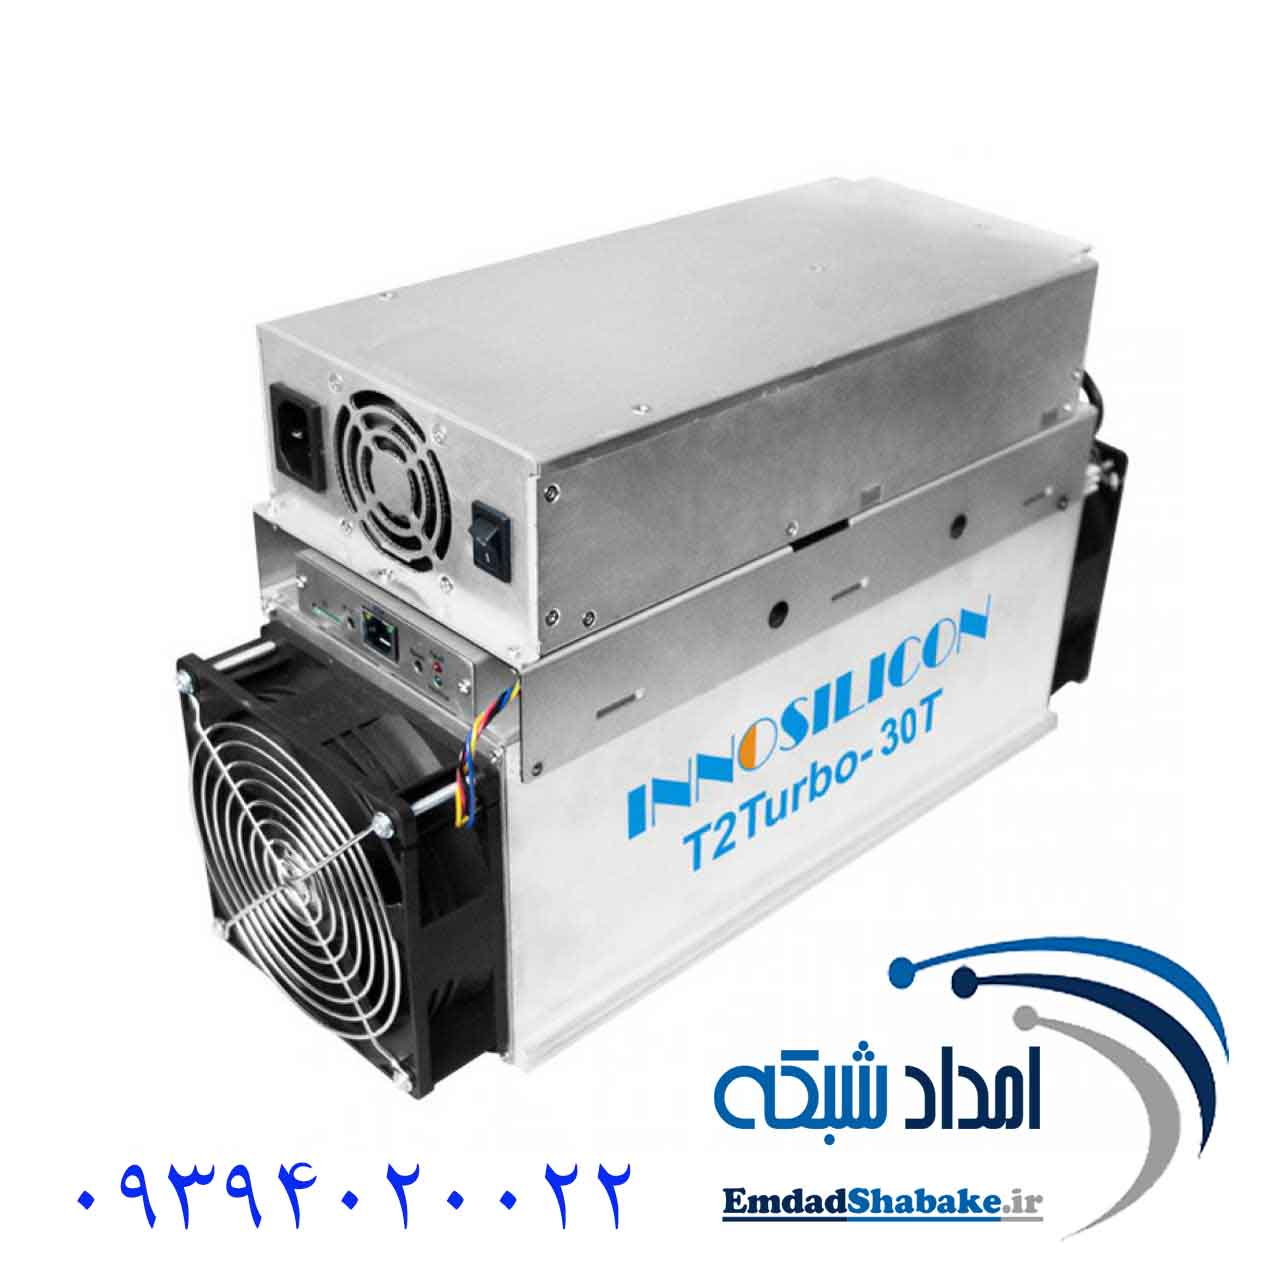 Innosilicon T2T 1000 دستگاه ماینر اینوسیلیکون T2T 36TH